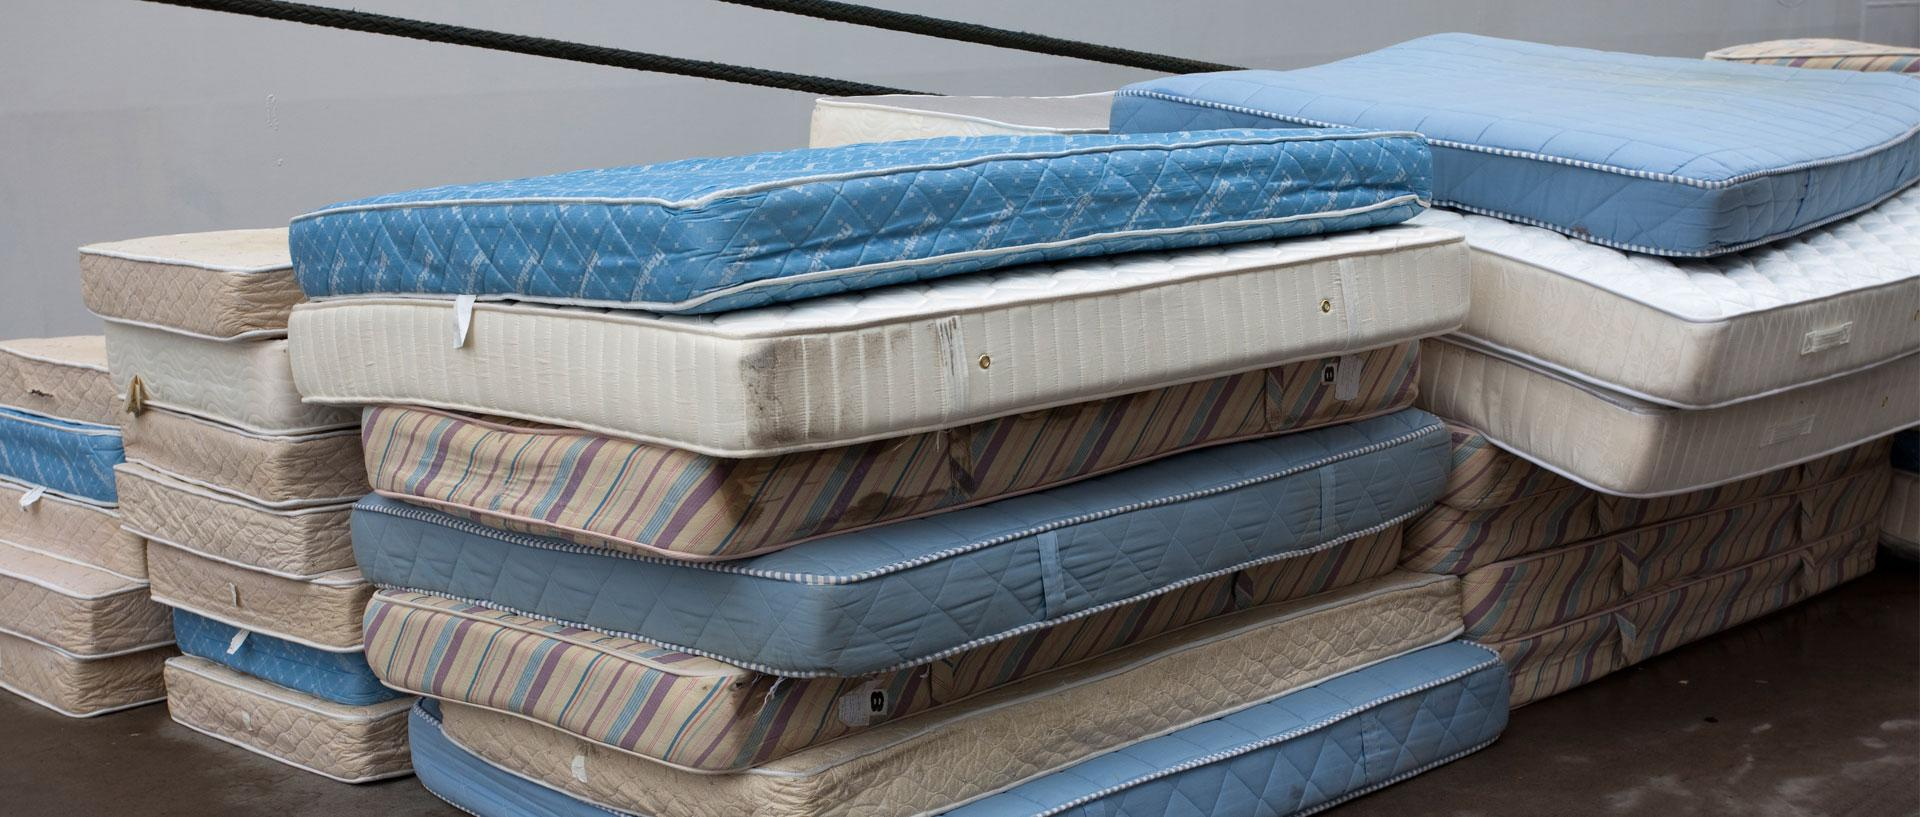 Mattress Recycling Is Easier Than You Think